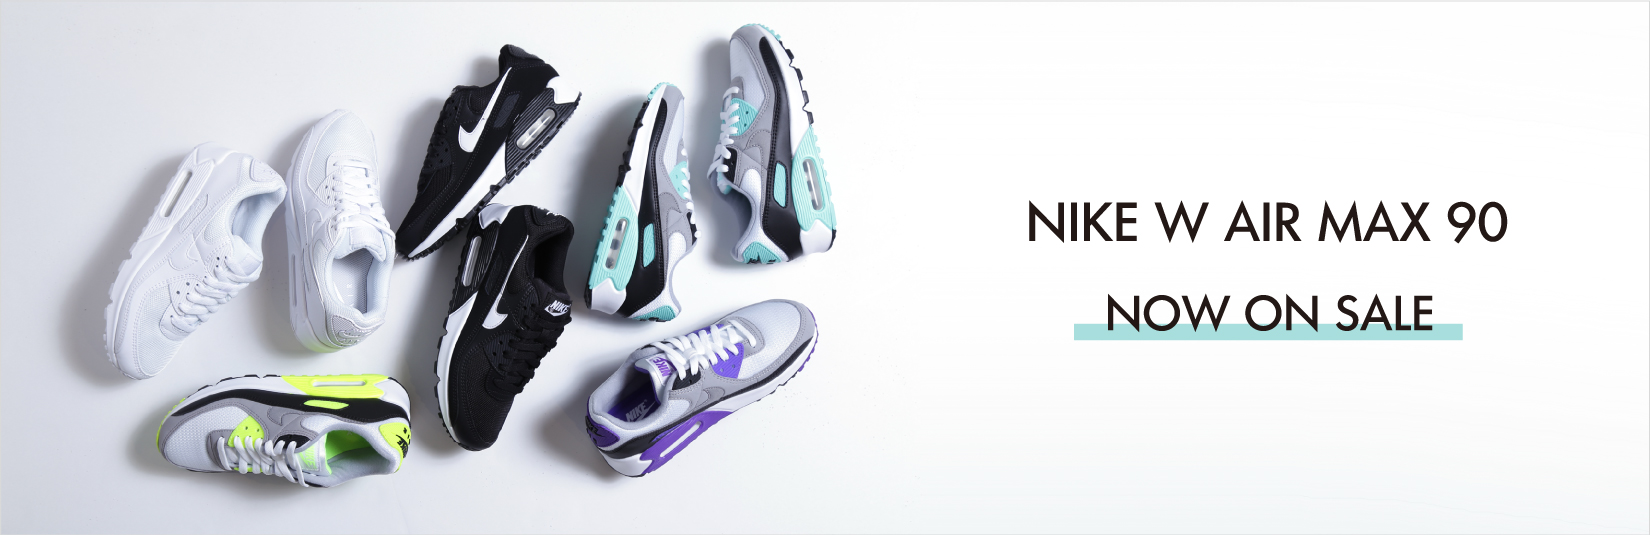 NIKE W AIR MAX 90 -NOW ON SALE-